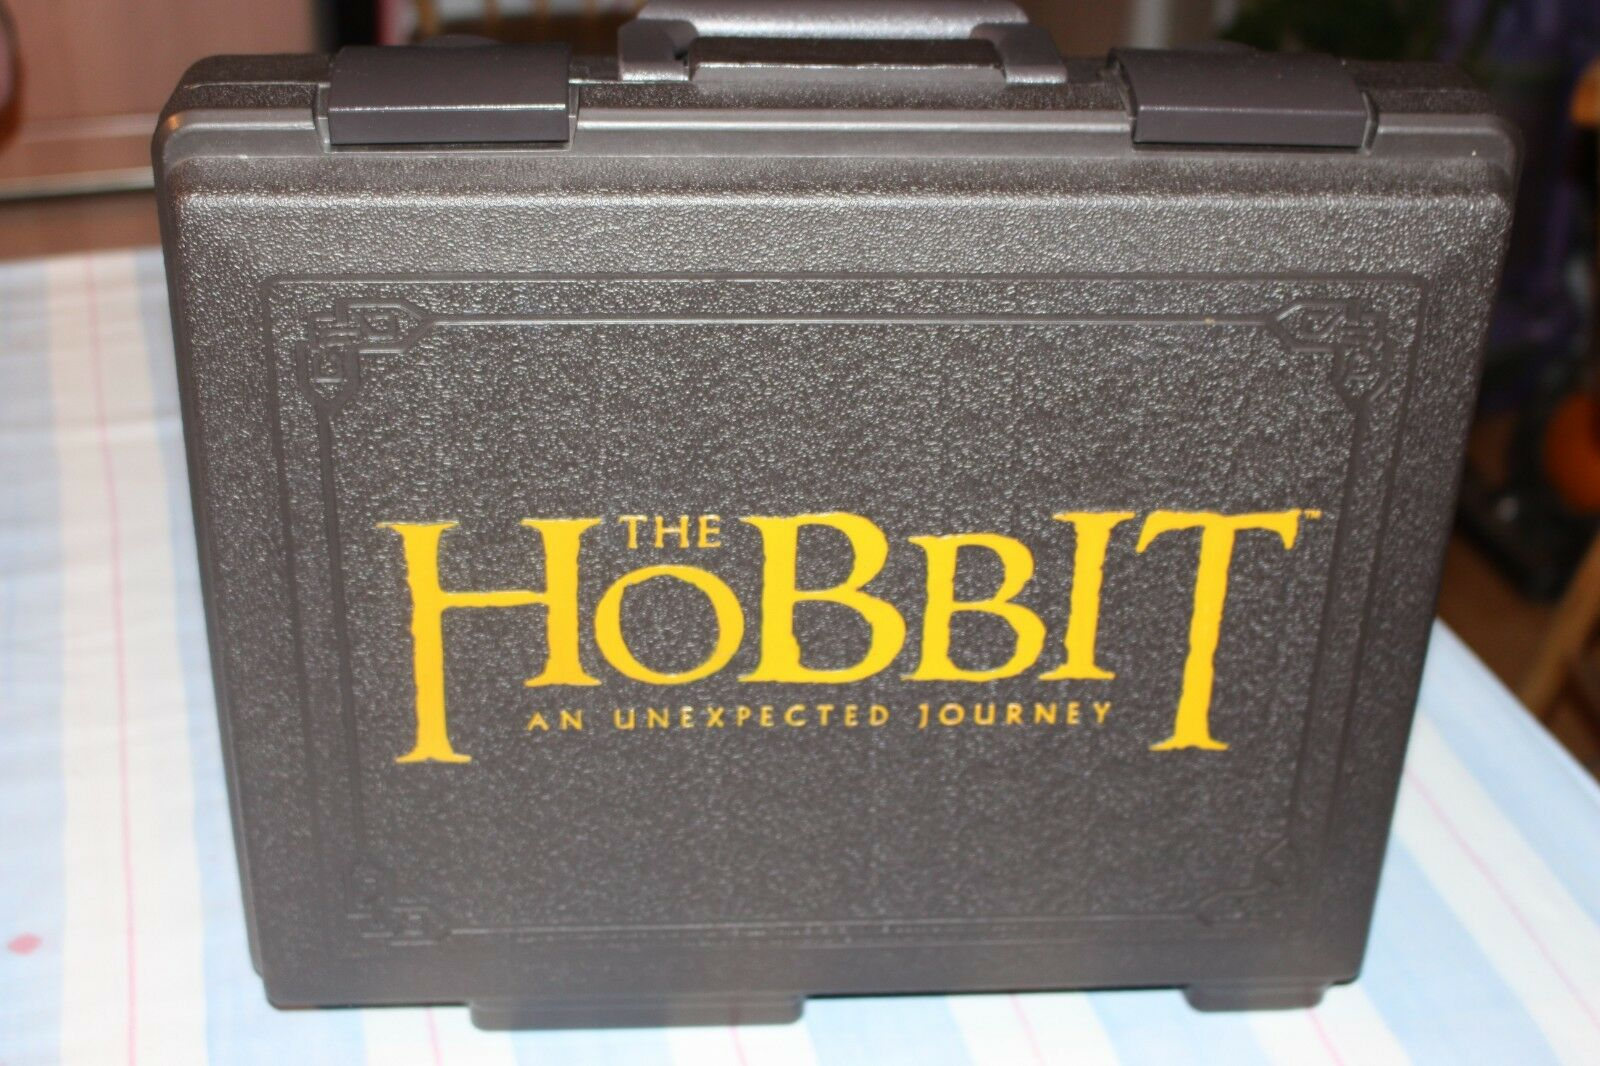 Games Workshop The Hobbit Figure Carry Case Citadel New Lord Lord Lord of the Rings GW OOP b20f1a